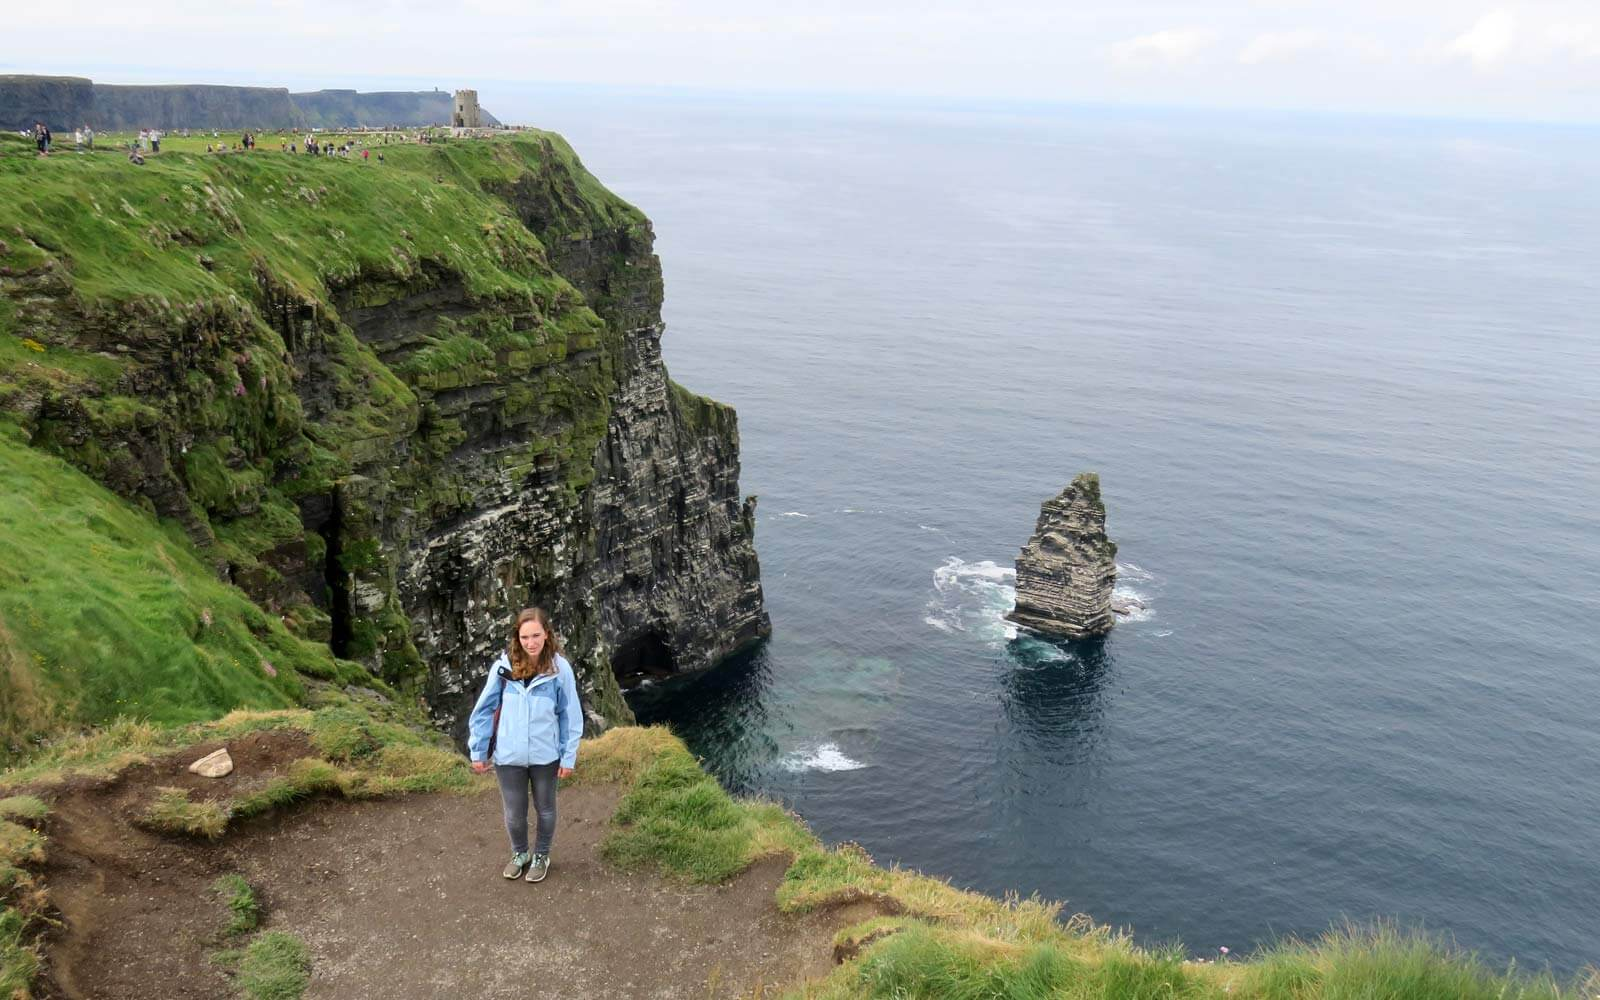 Maren an den Cliffs of Moher mit Blick zum O'Brien's Tower